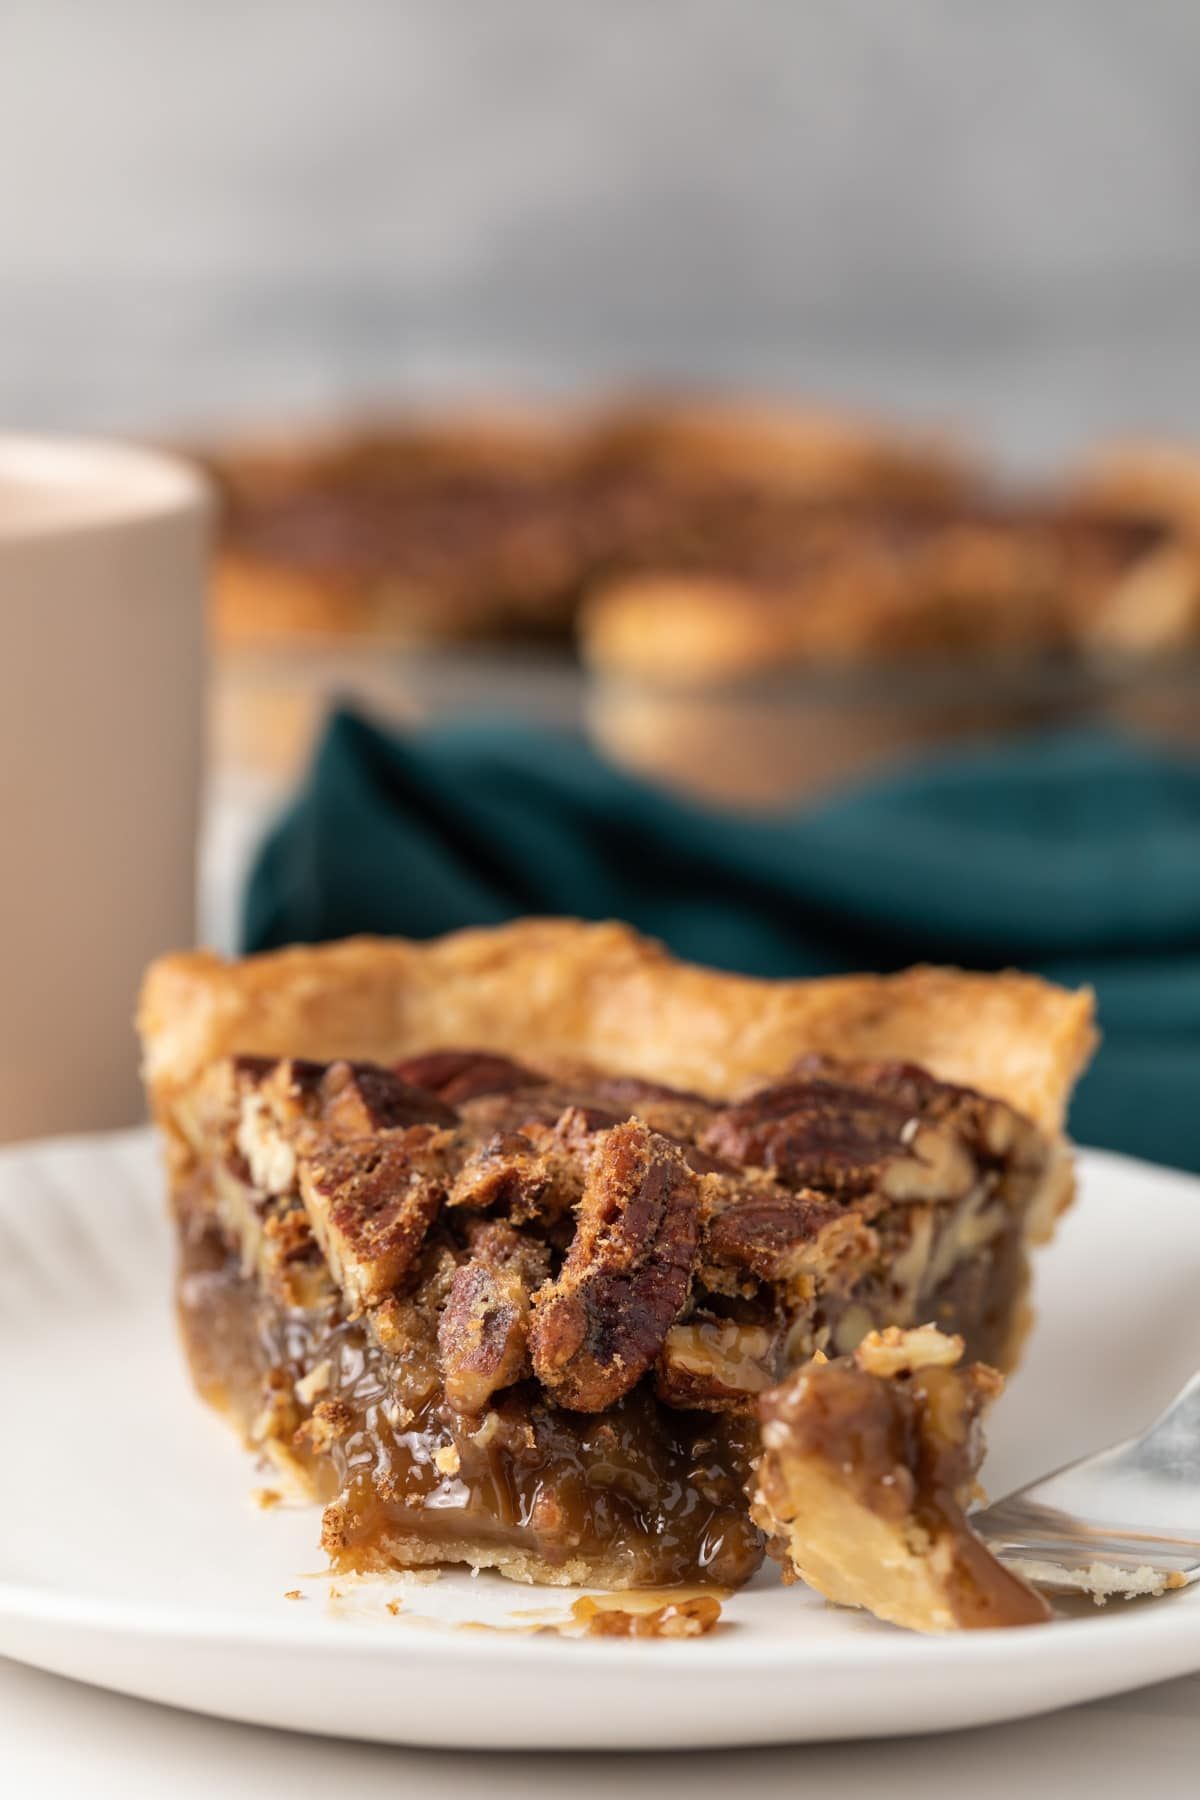 slice of pecan pie with fork taking a bite out